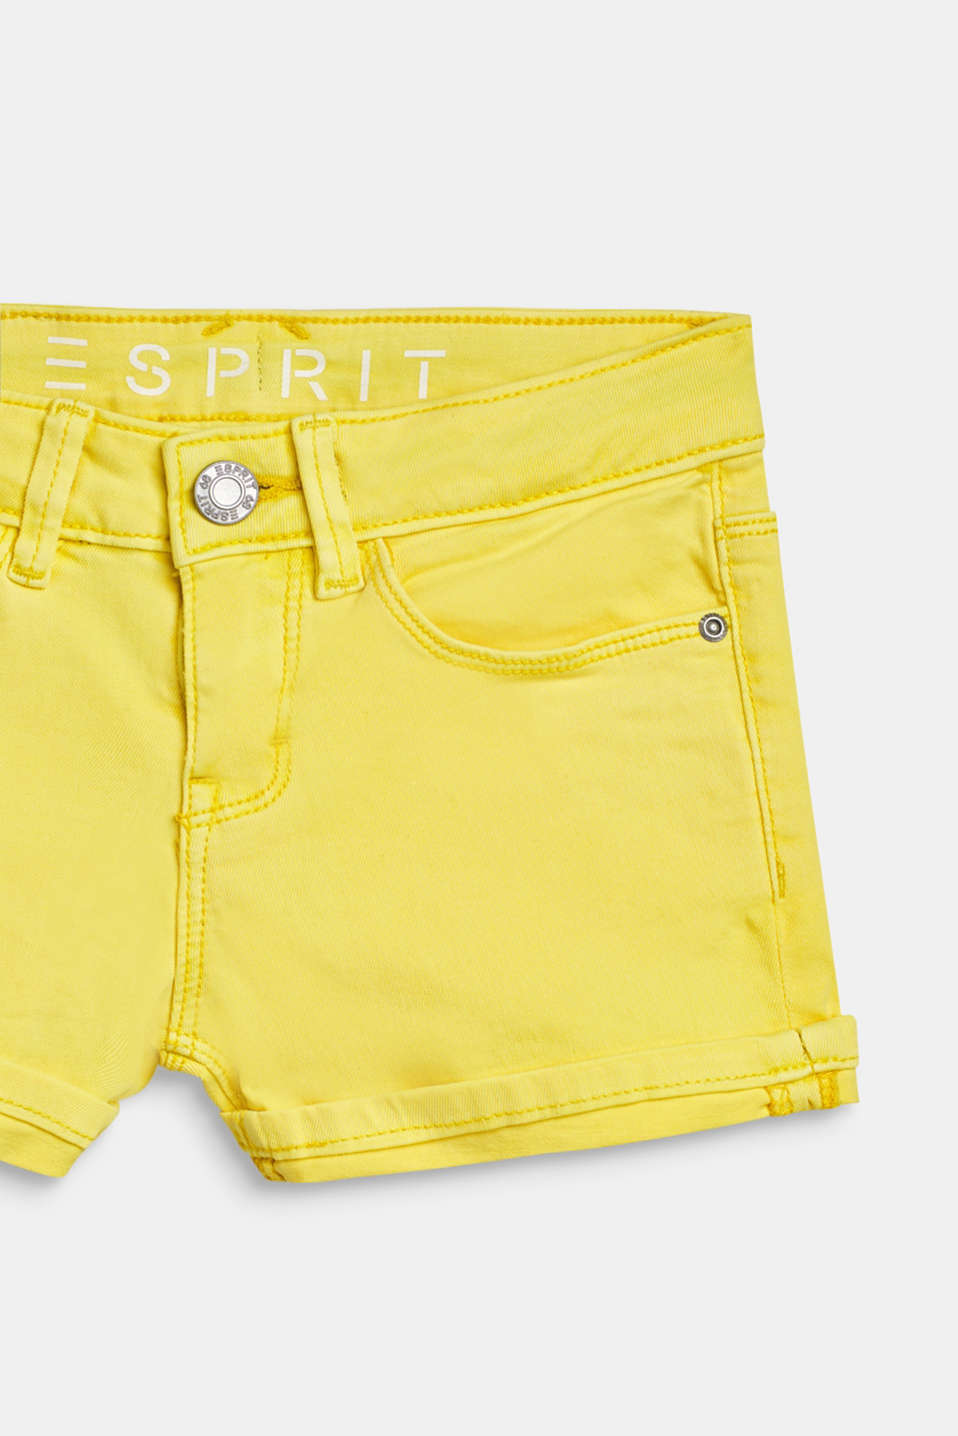 Denim shorts with an adjustable waistband, LCLEMON DROP, detail image number 2